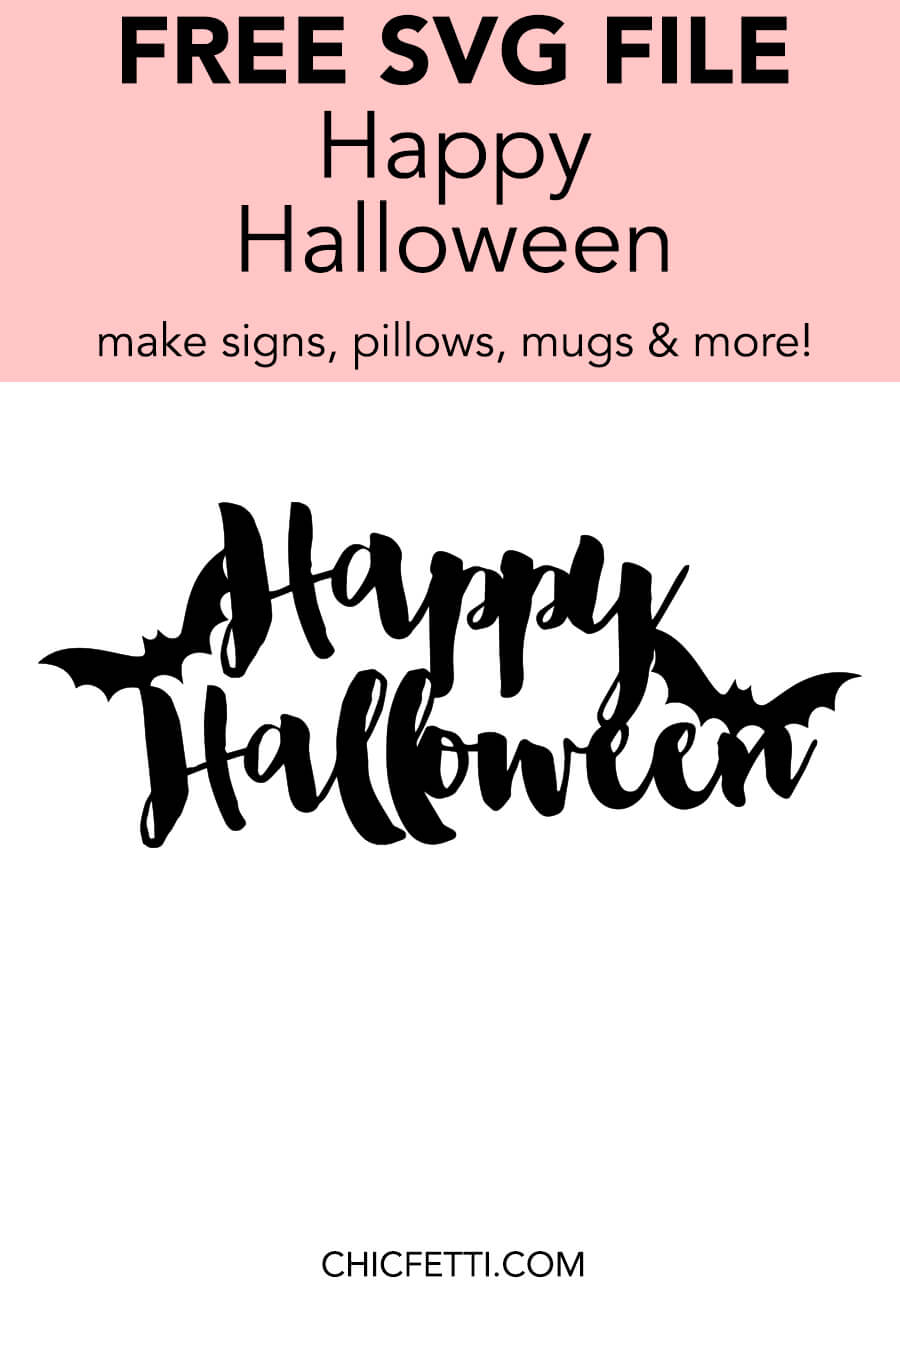 Happy Halloween Free SVG File - Use this SVG cut file to make decals, t-shirts, bags, mugs and more! This SVG file is for electronic cutting machines such as Silhouette Cameo or Cricut #svgfile #svgcutfile #diyideas #diyprojects #silhouettecameo #cricut #halloween #halloweenideas